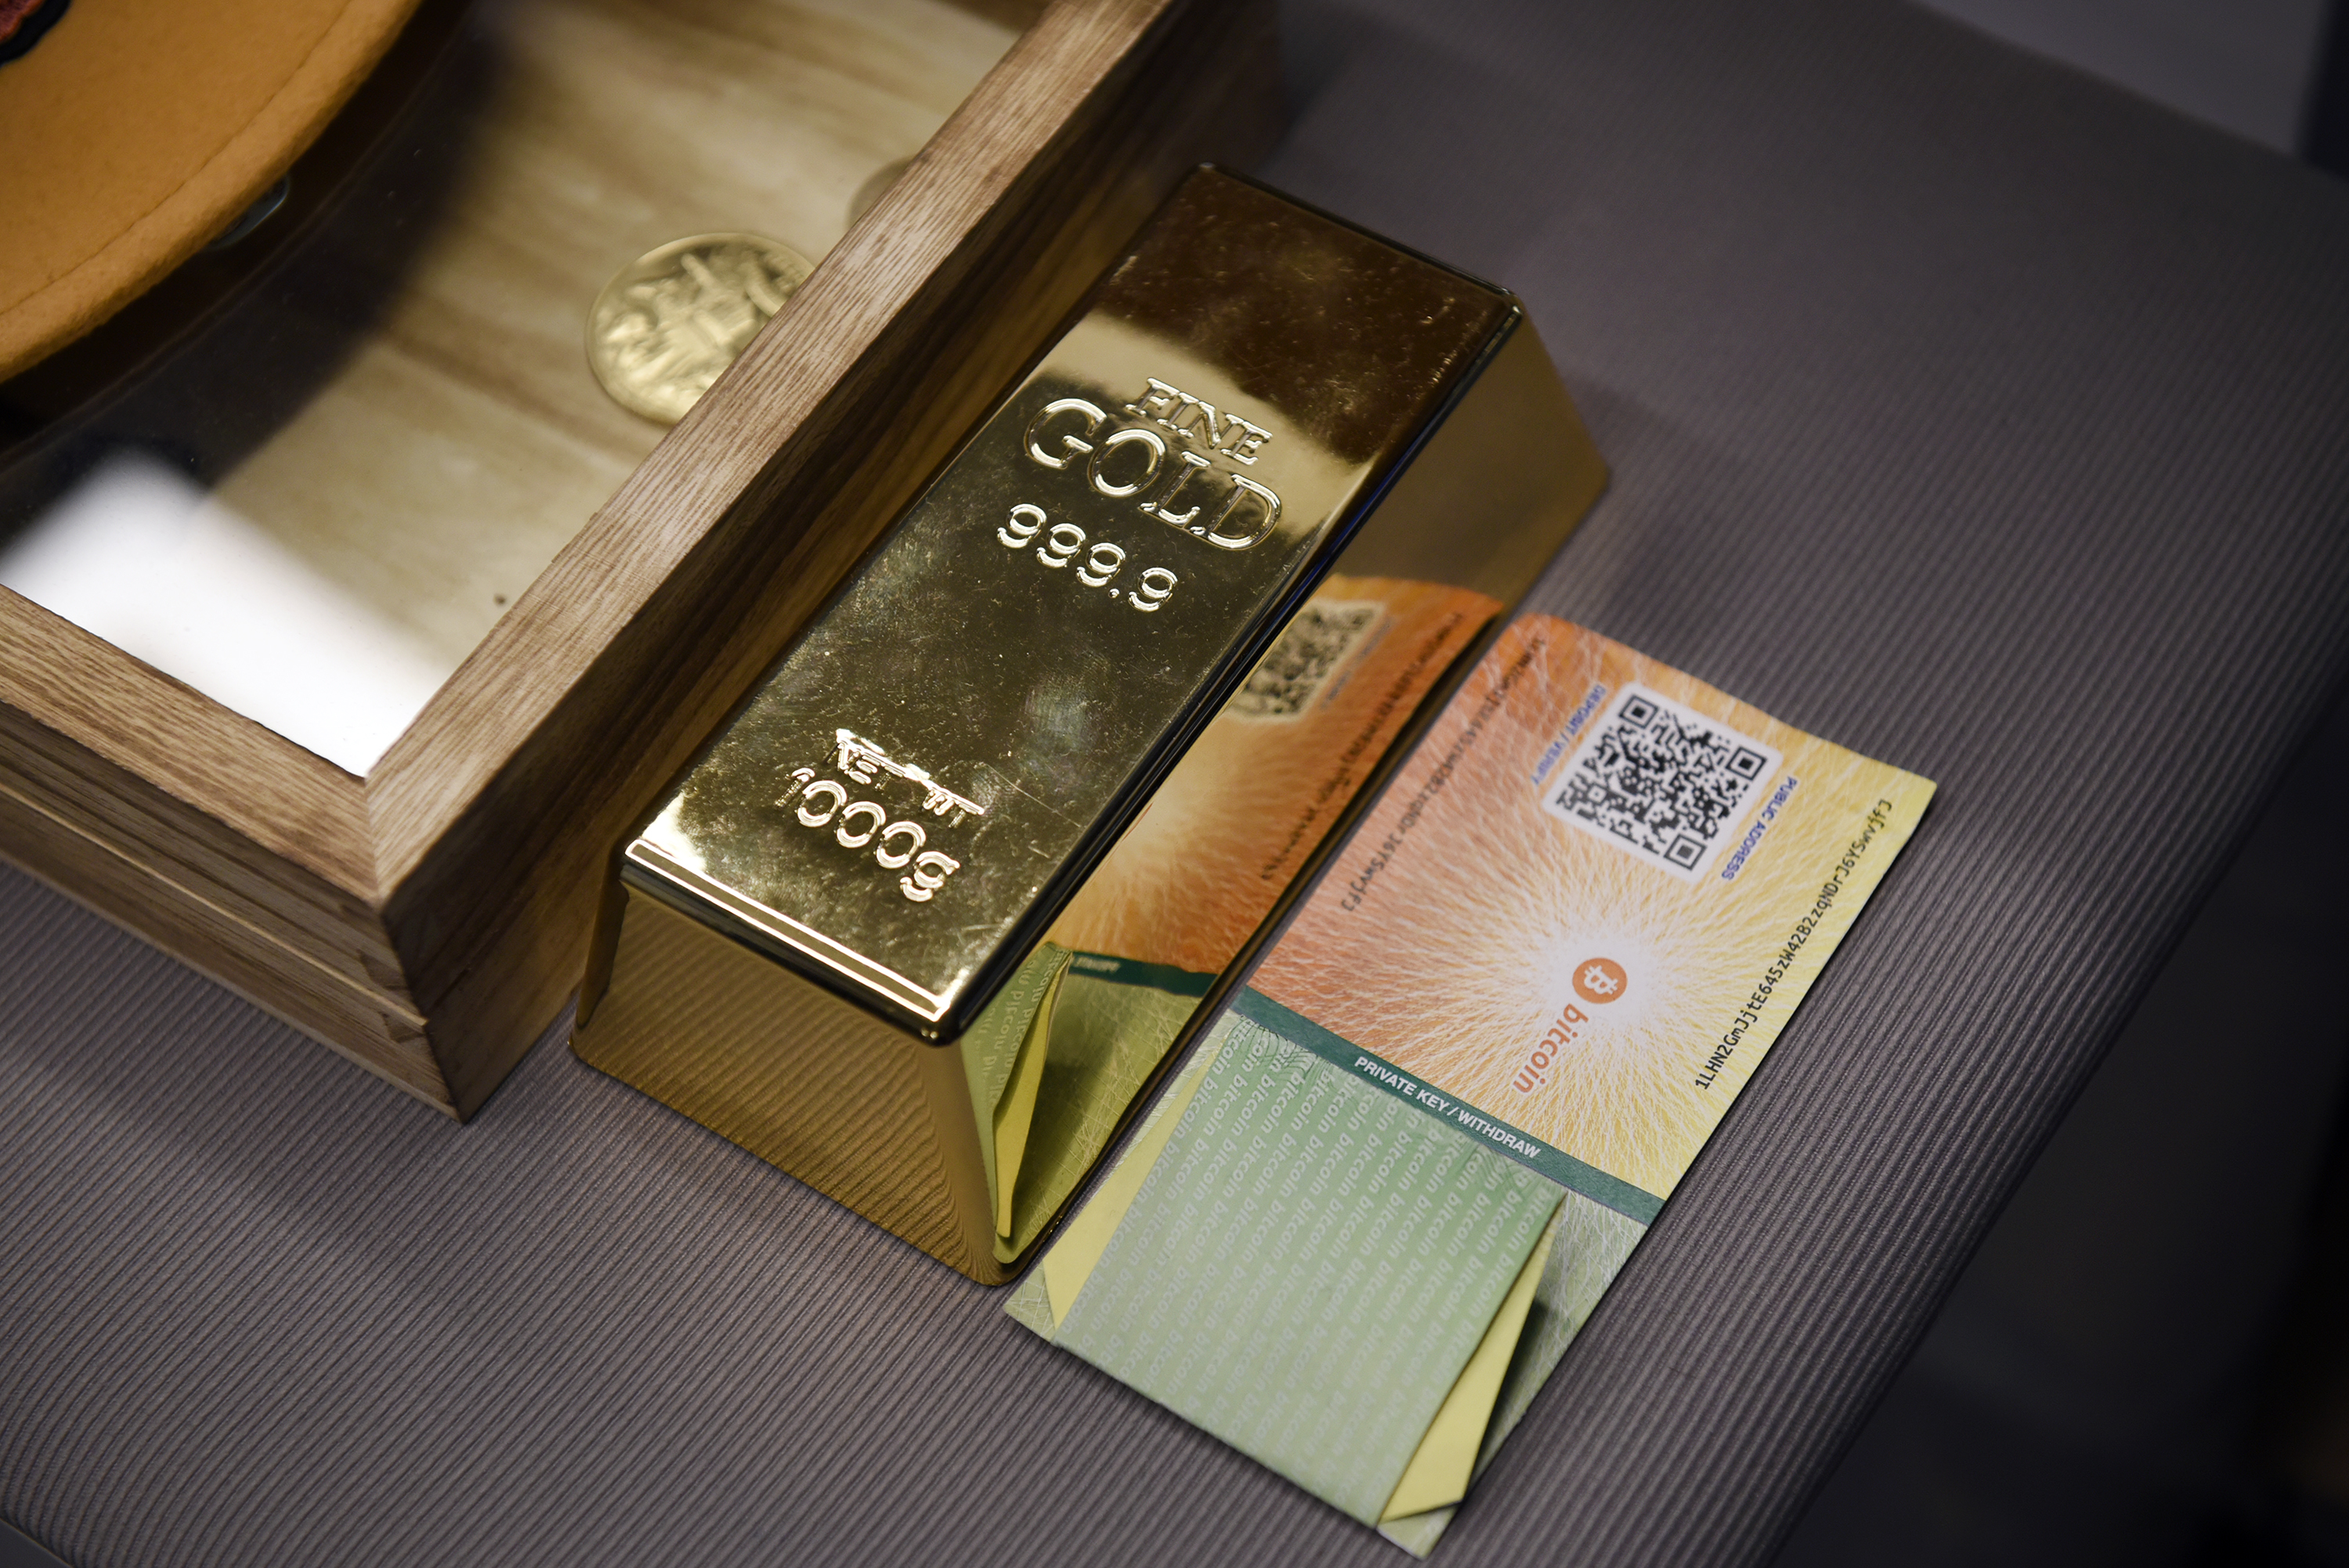 A fake gold bar sits on a table at the Coinbase Inc. office in San Francisco, California, U.S., on Friday, Dec. 1, 2017. Coinbase wants to use digital money to reinvent finance. In the company's version of the future, loans, venture capital, money transfers, accounts receivable and stock trading can all be done with electronic currency, using Coinbase instead of banks.